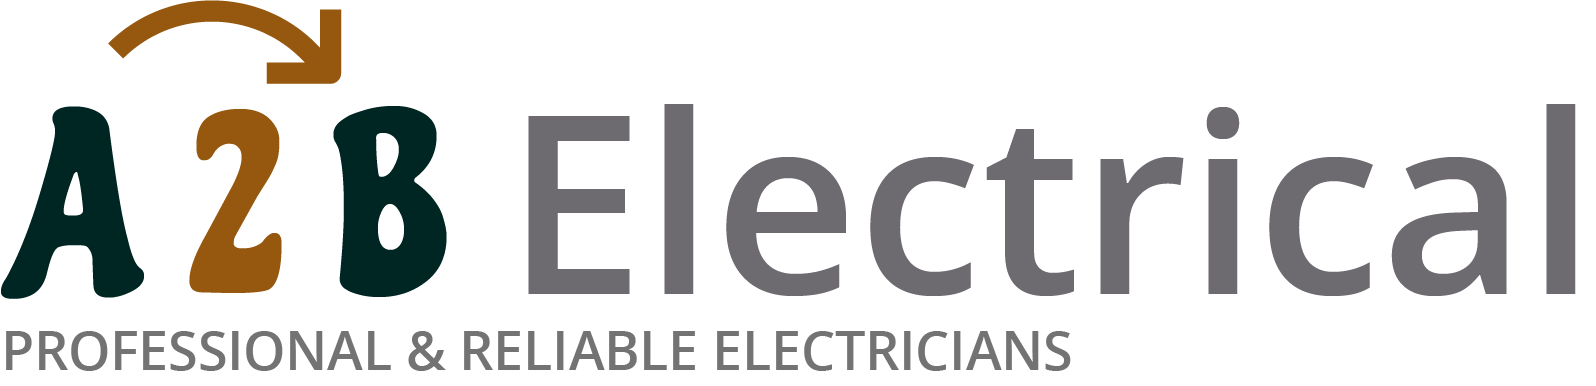 If you have electrical wiring problems in Brentwood, we can provide an electrician to have a look for you.